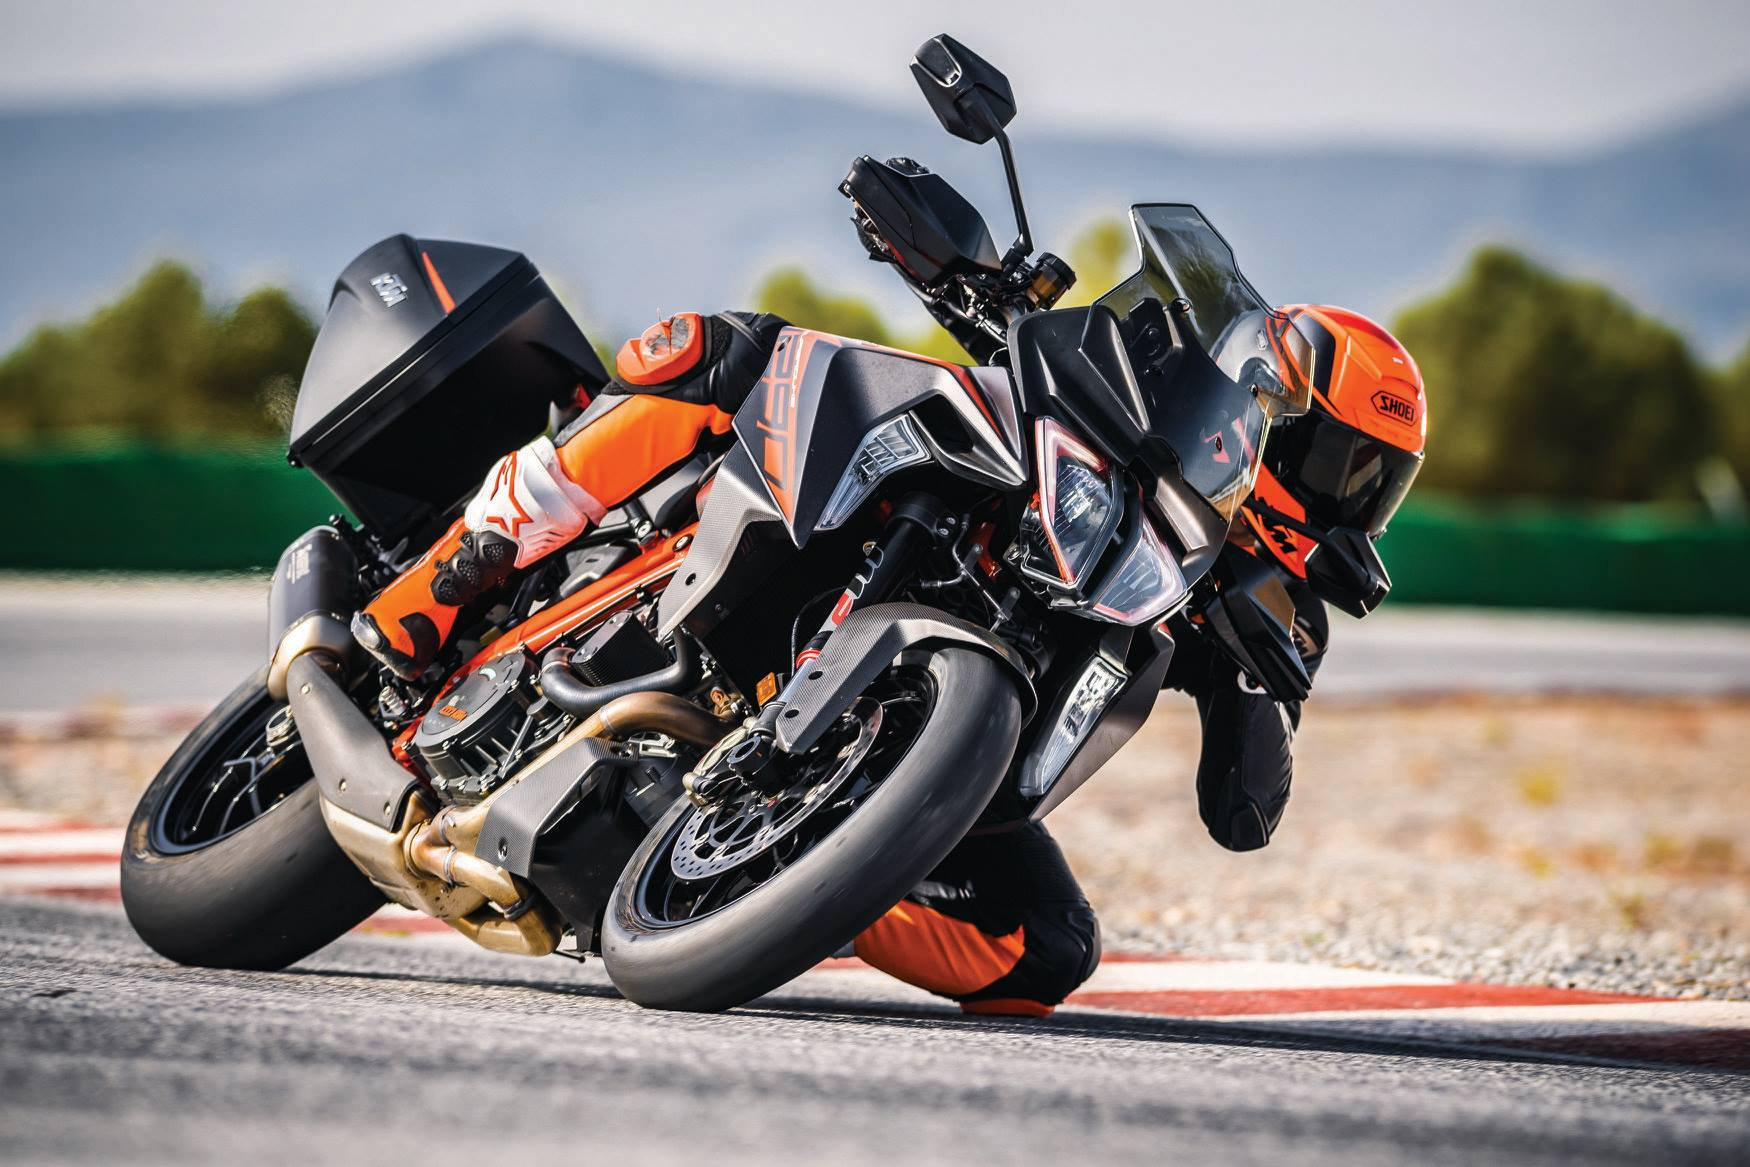 KTM goes all out with the new 1290 Super Duke GT and R version